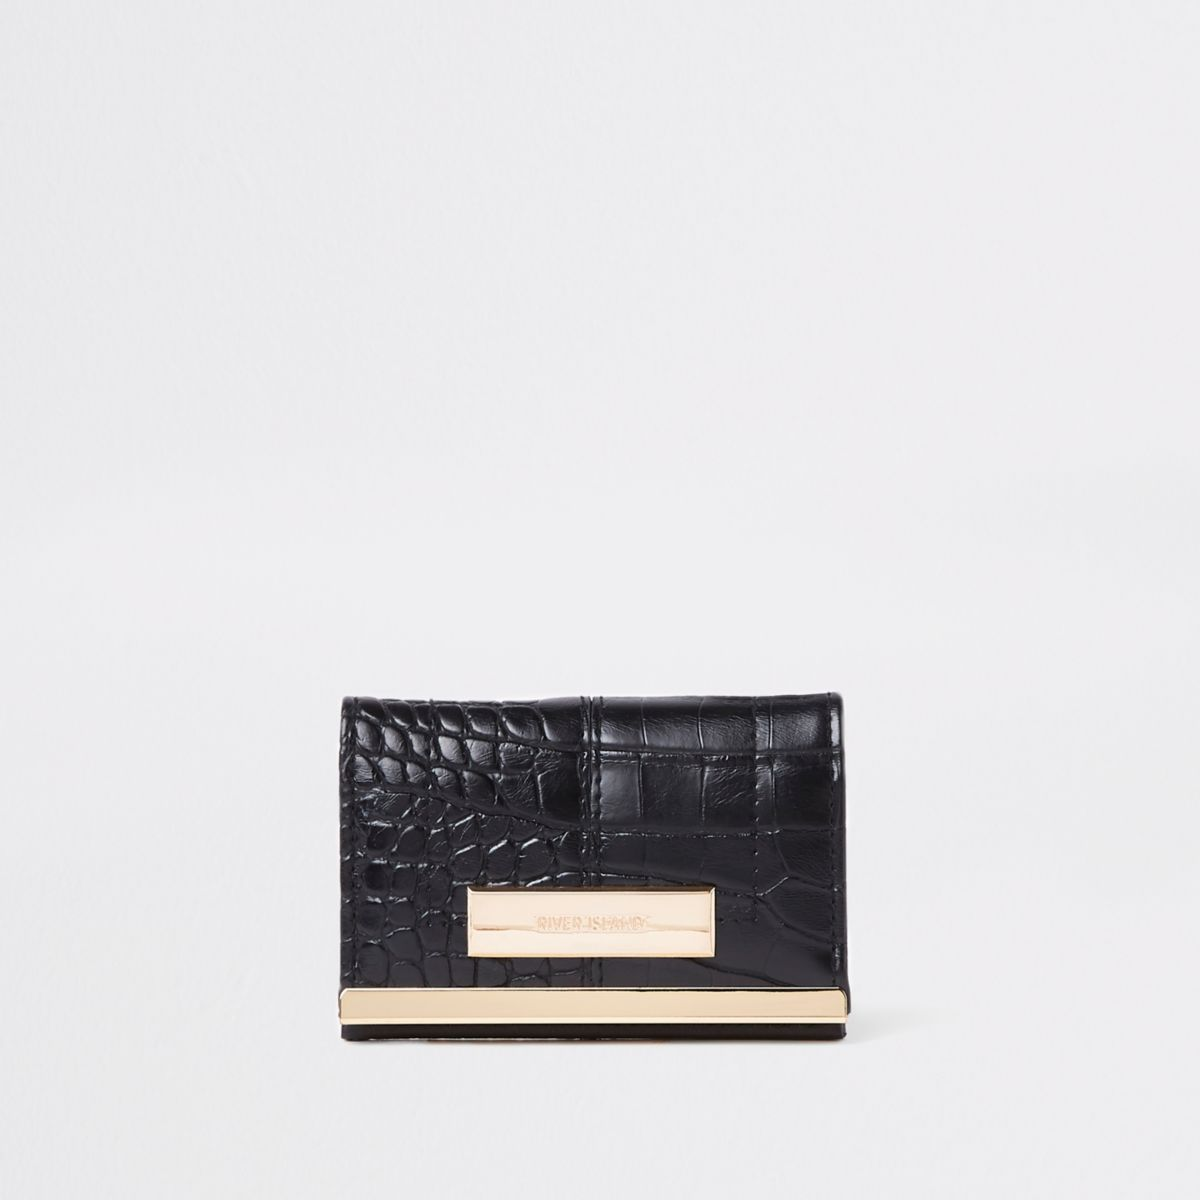 Black croc travel card holder